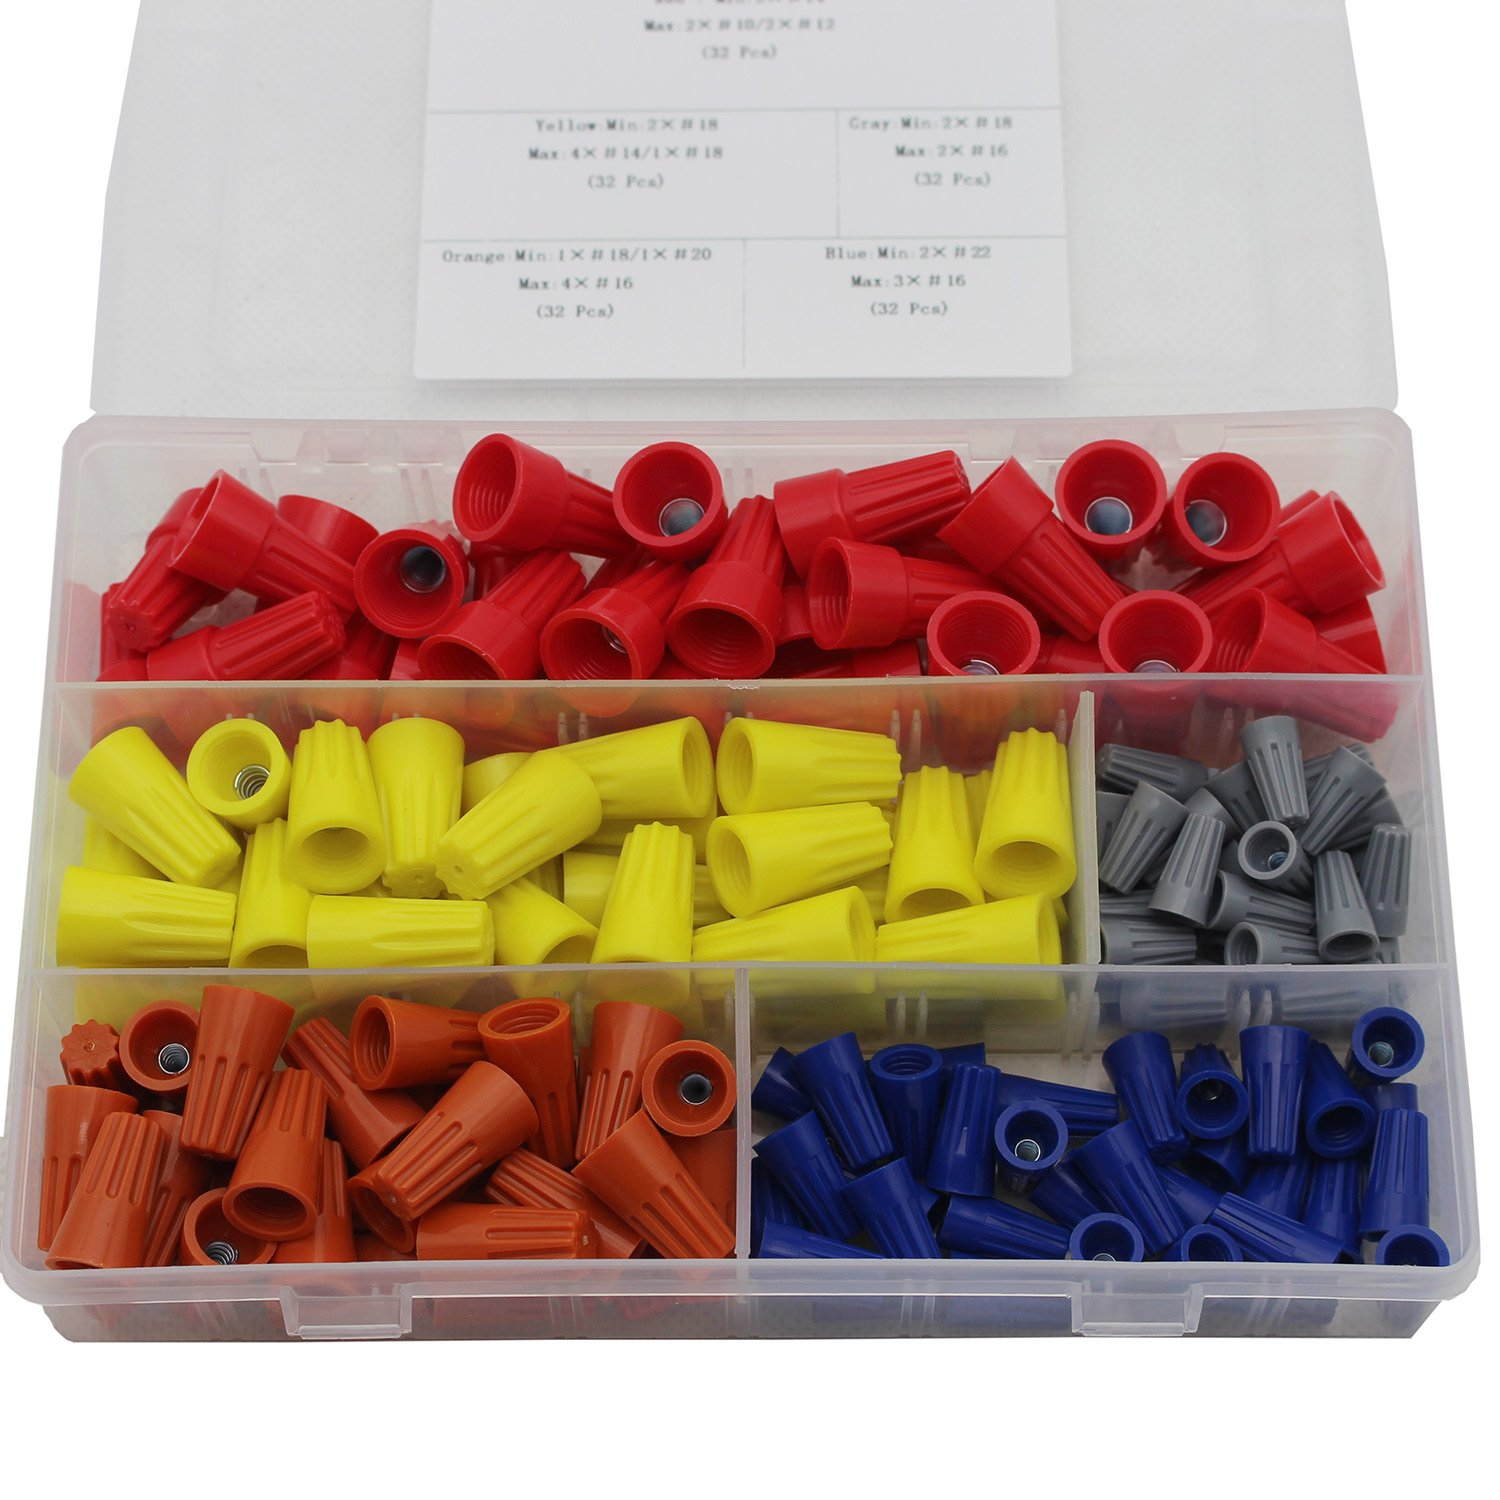 FUNMANY Wire Connectors Screw Terminals with Spring Insert Twist Nuts Caps Connectors Assortment Kit for 160pcs